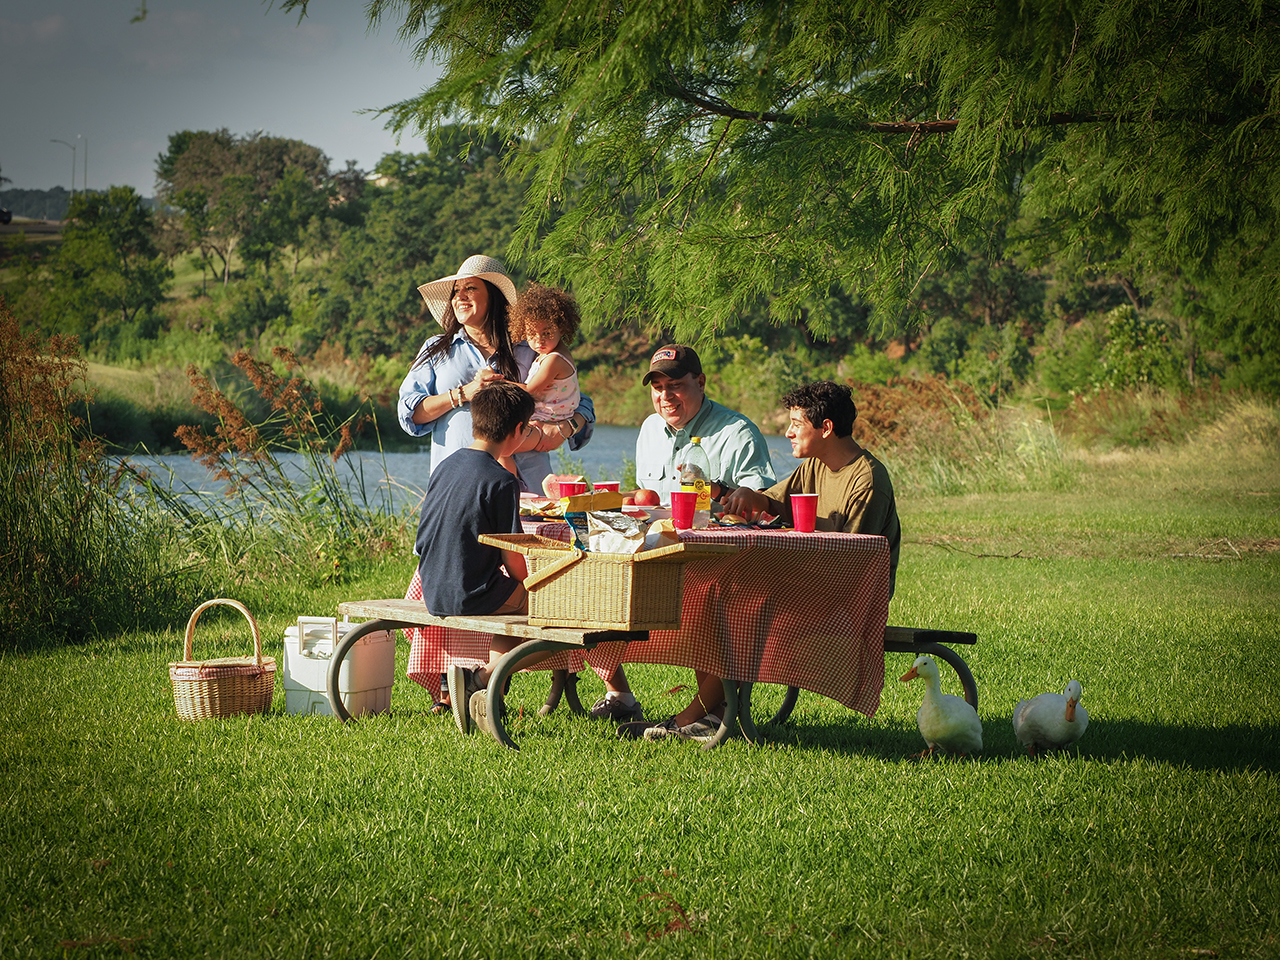 Family Picnic at Lady Bird Johnson Park - Photo: Trish Rawls